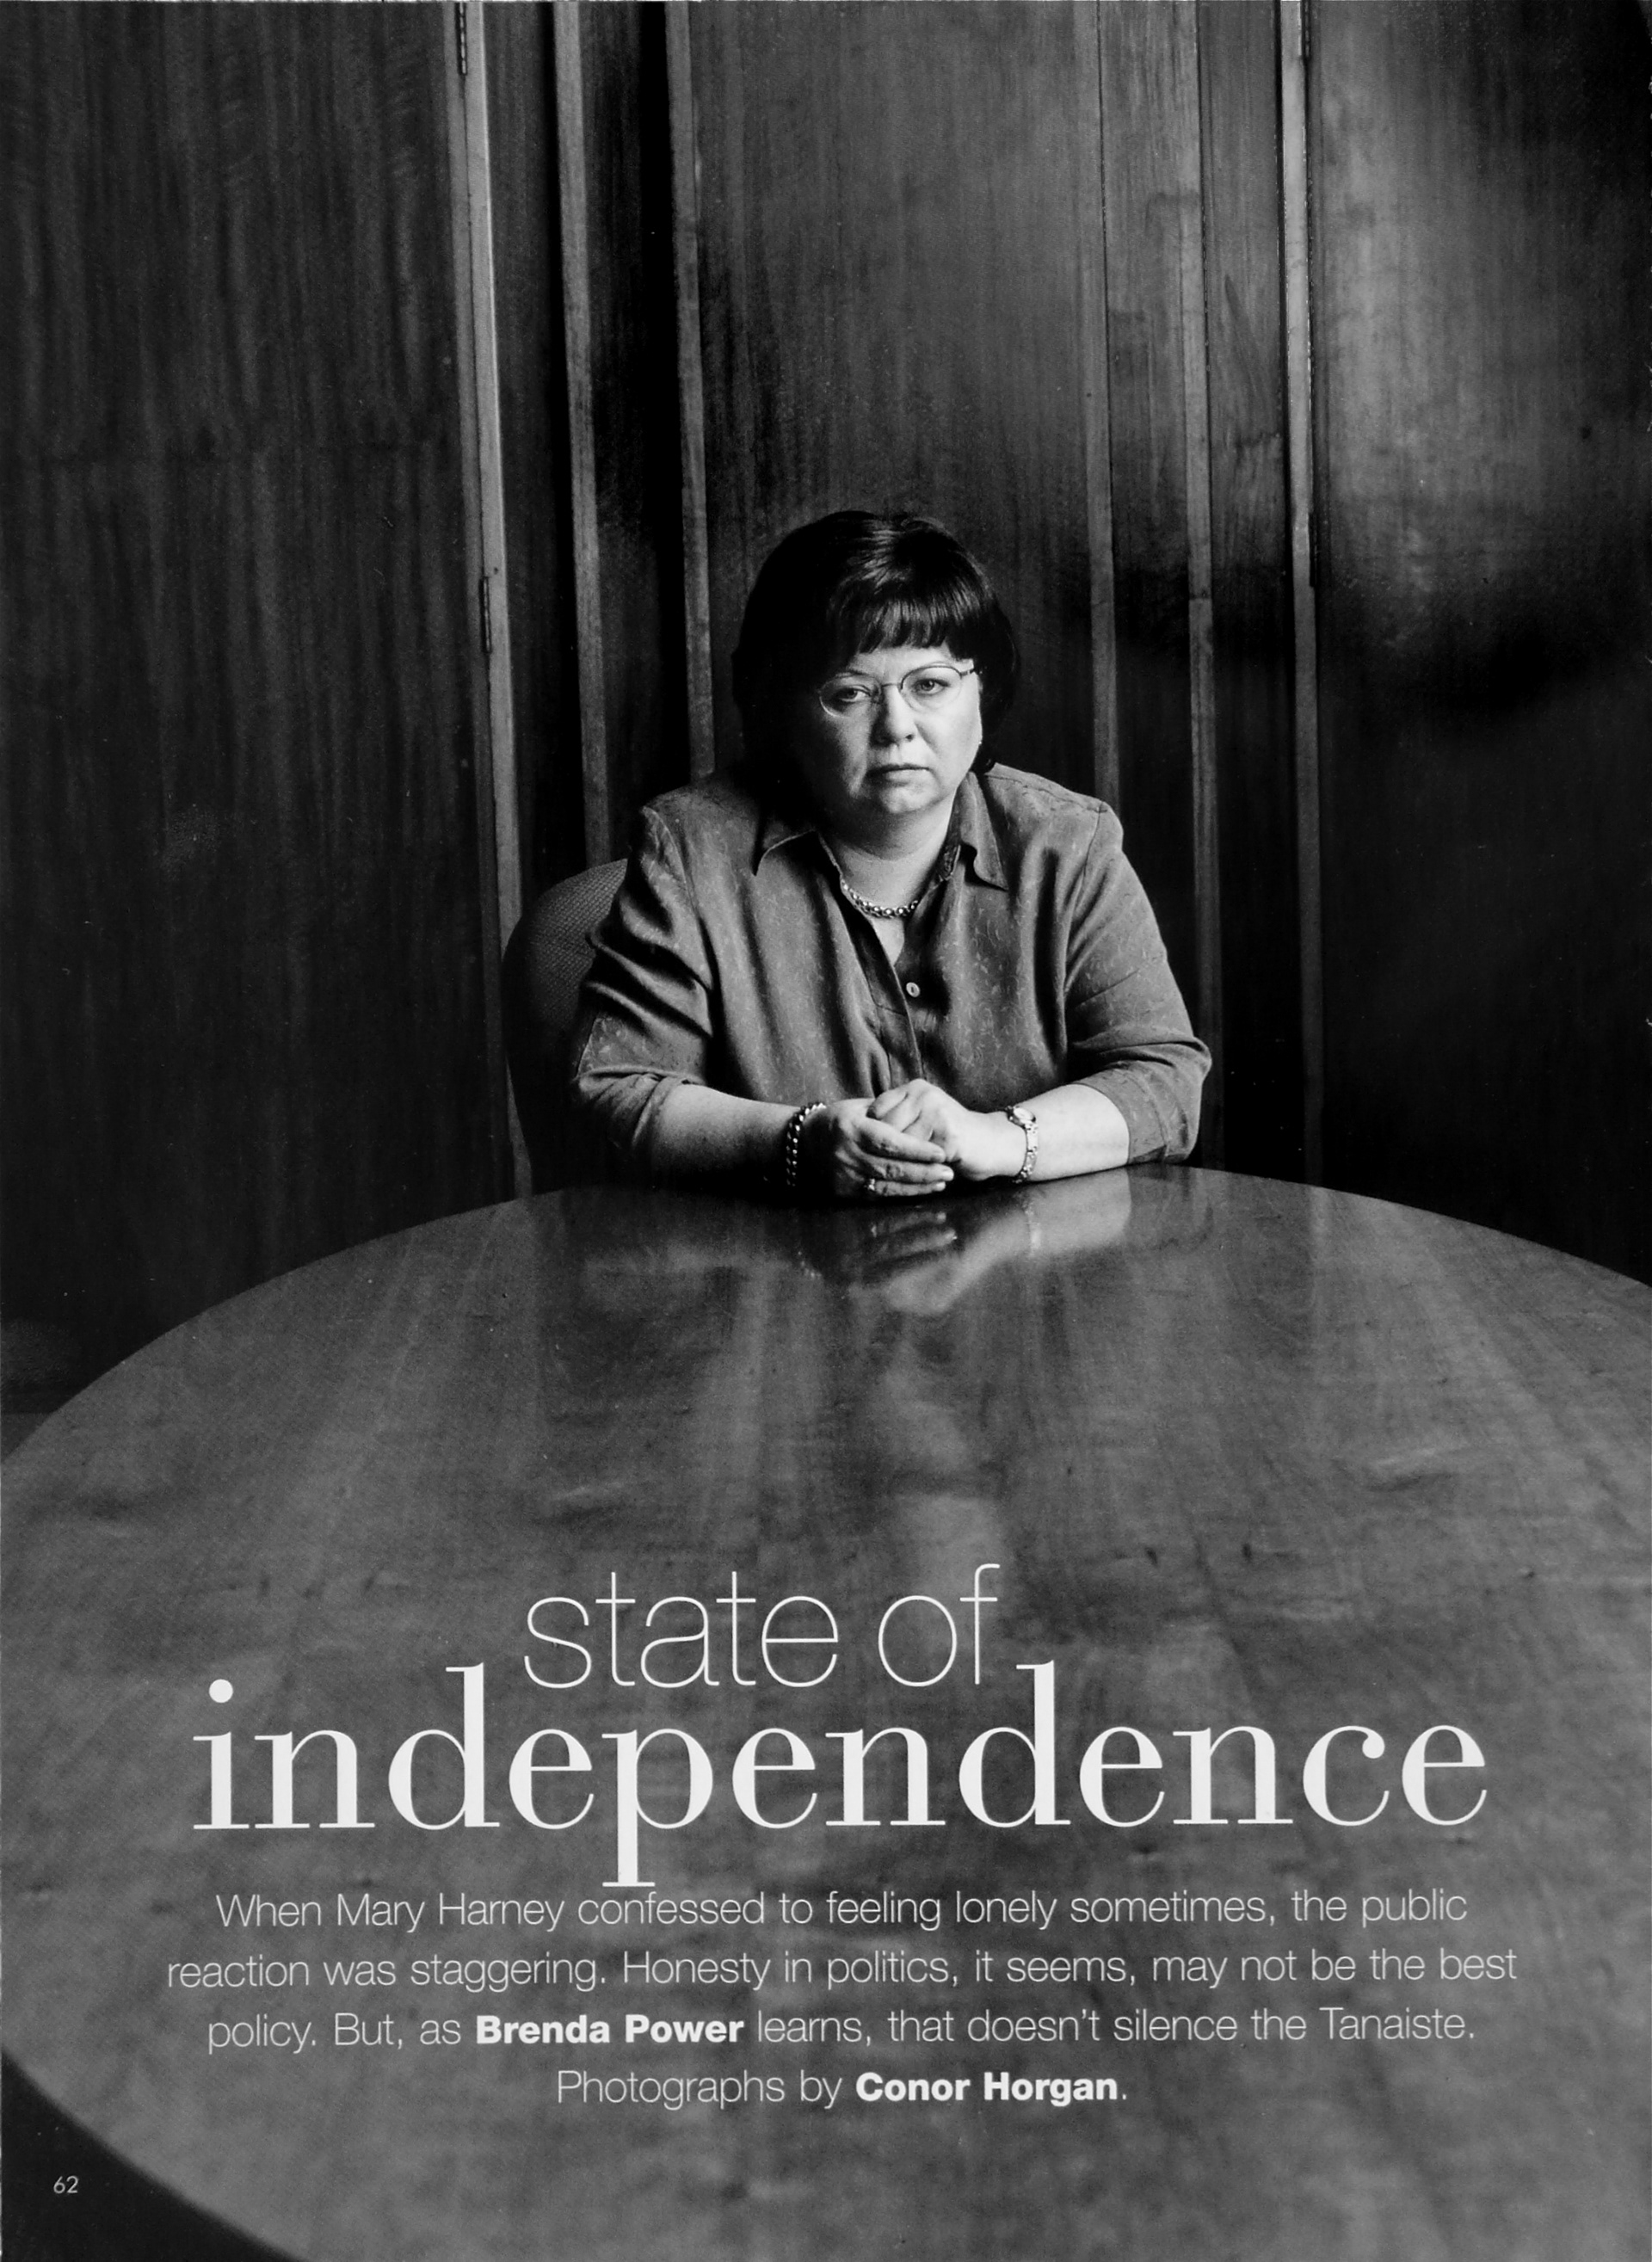 Mary Harney, leader of the Progressive Democrats, for Image Magazine.